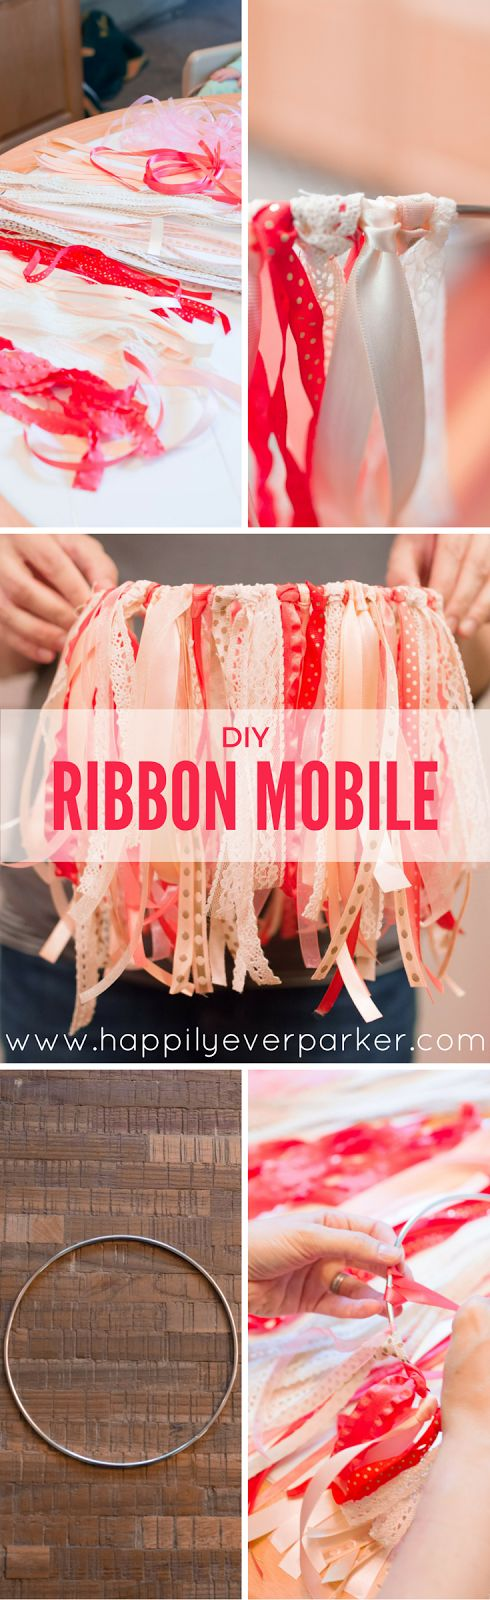 Happily Ever Parker   DIY Ribbon Mobile